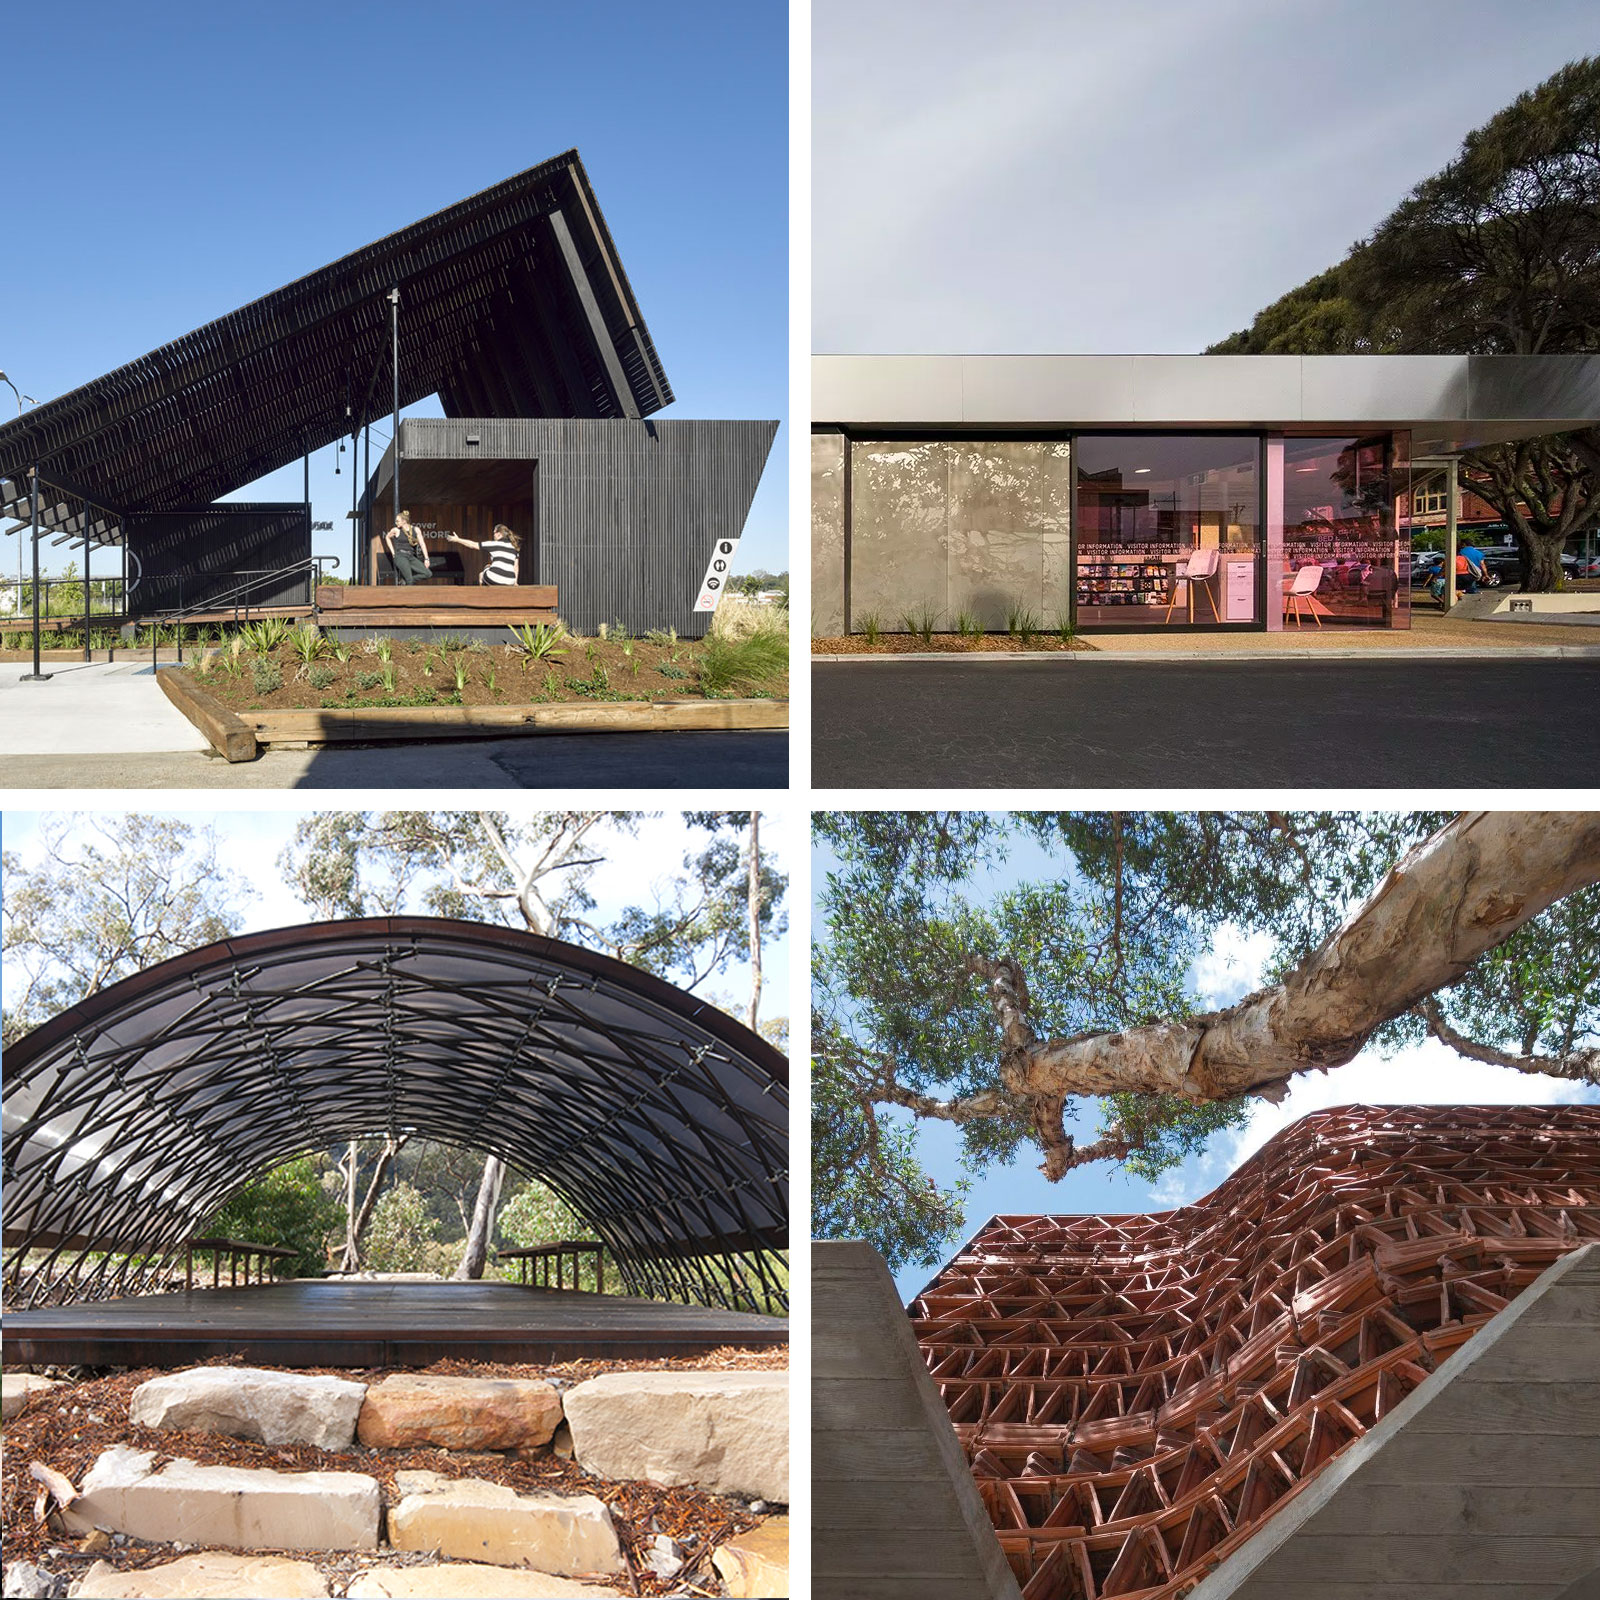 Northshore Pavilion (top left), Sorrento Visitor Centre (top right), Bugiga Hiker Camp (bottom left) and The Beehive (bottom right).